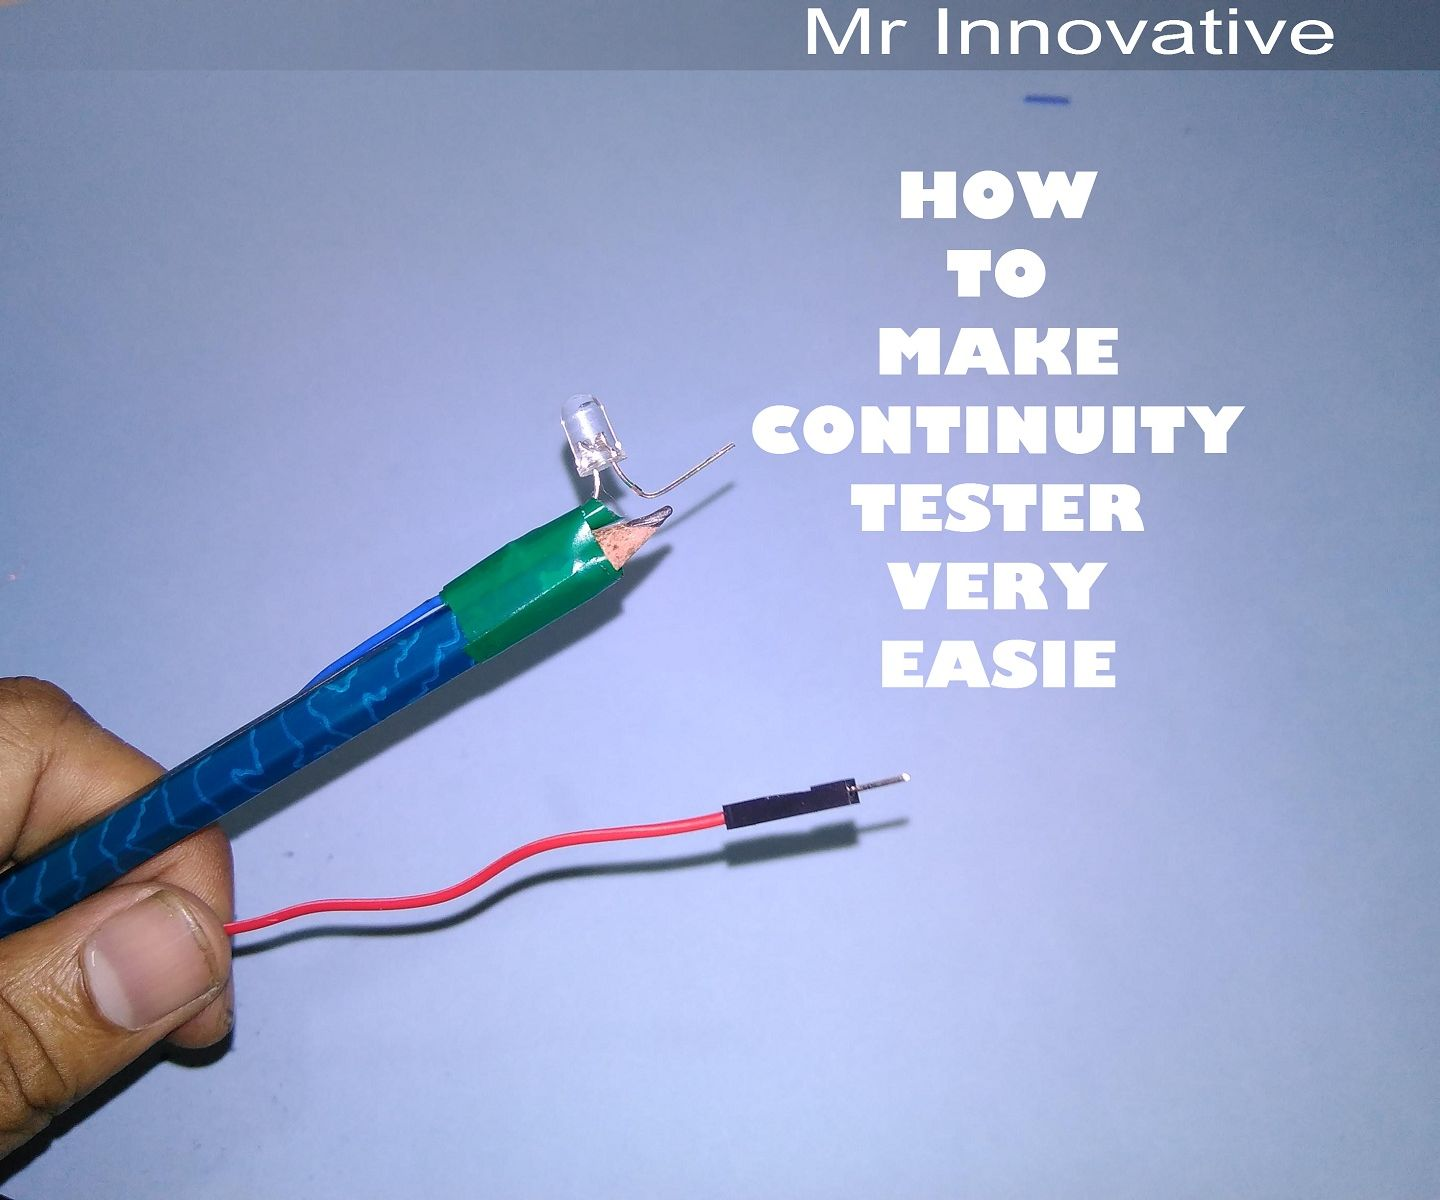 How to Make a Continuity Tester Extremely Easy